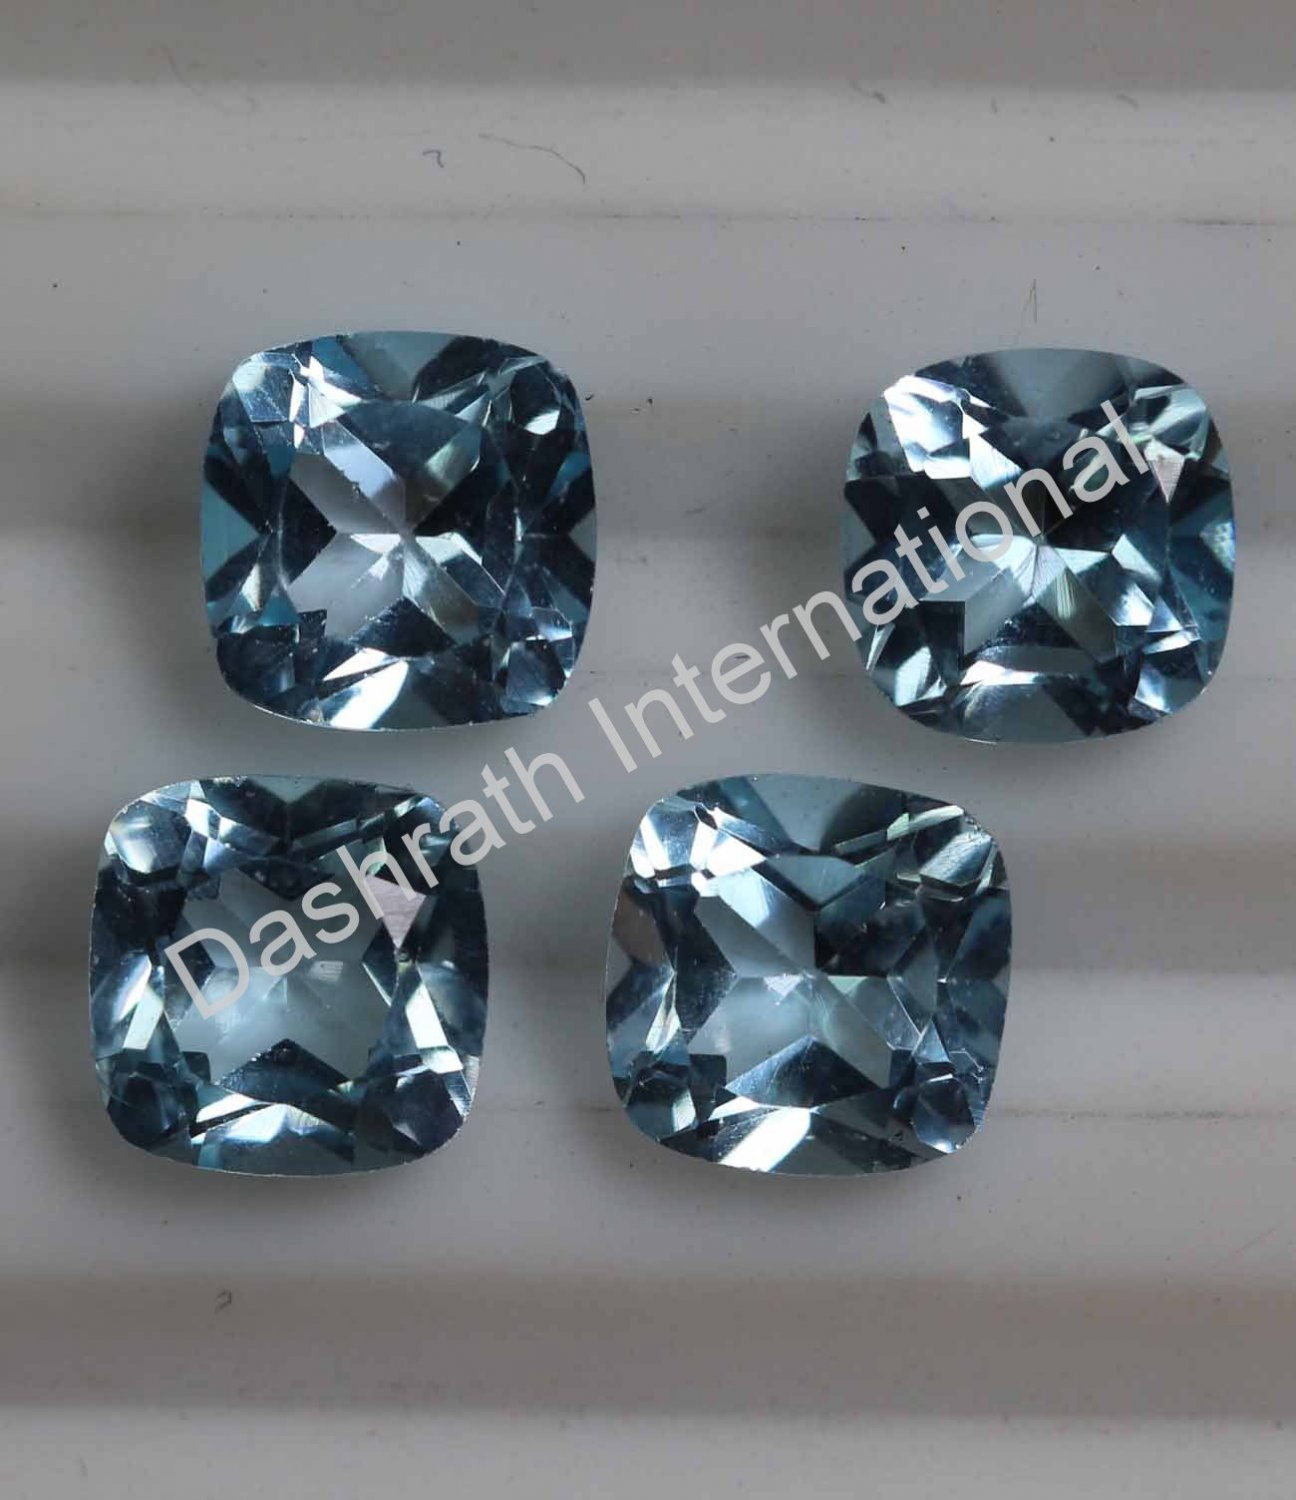 6mm Natural Sky Blue Topaz Faceted Cut Cushion 10 Pieces Lot Top Quality Loose Gemstone